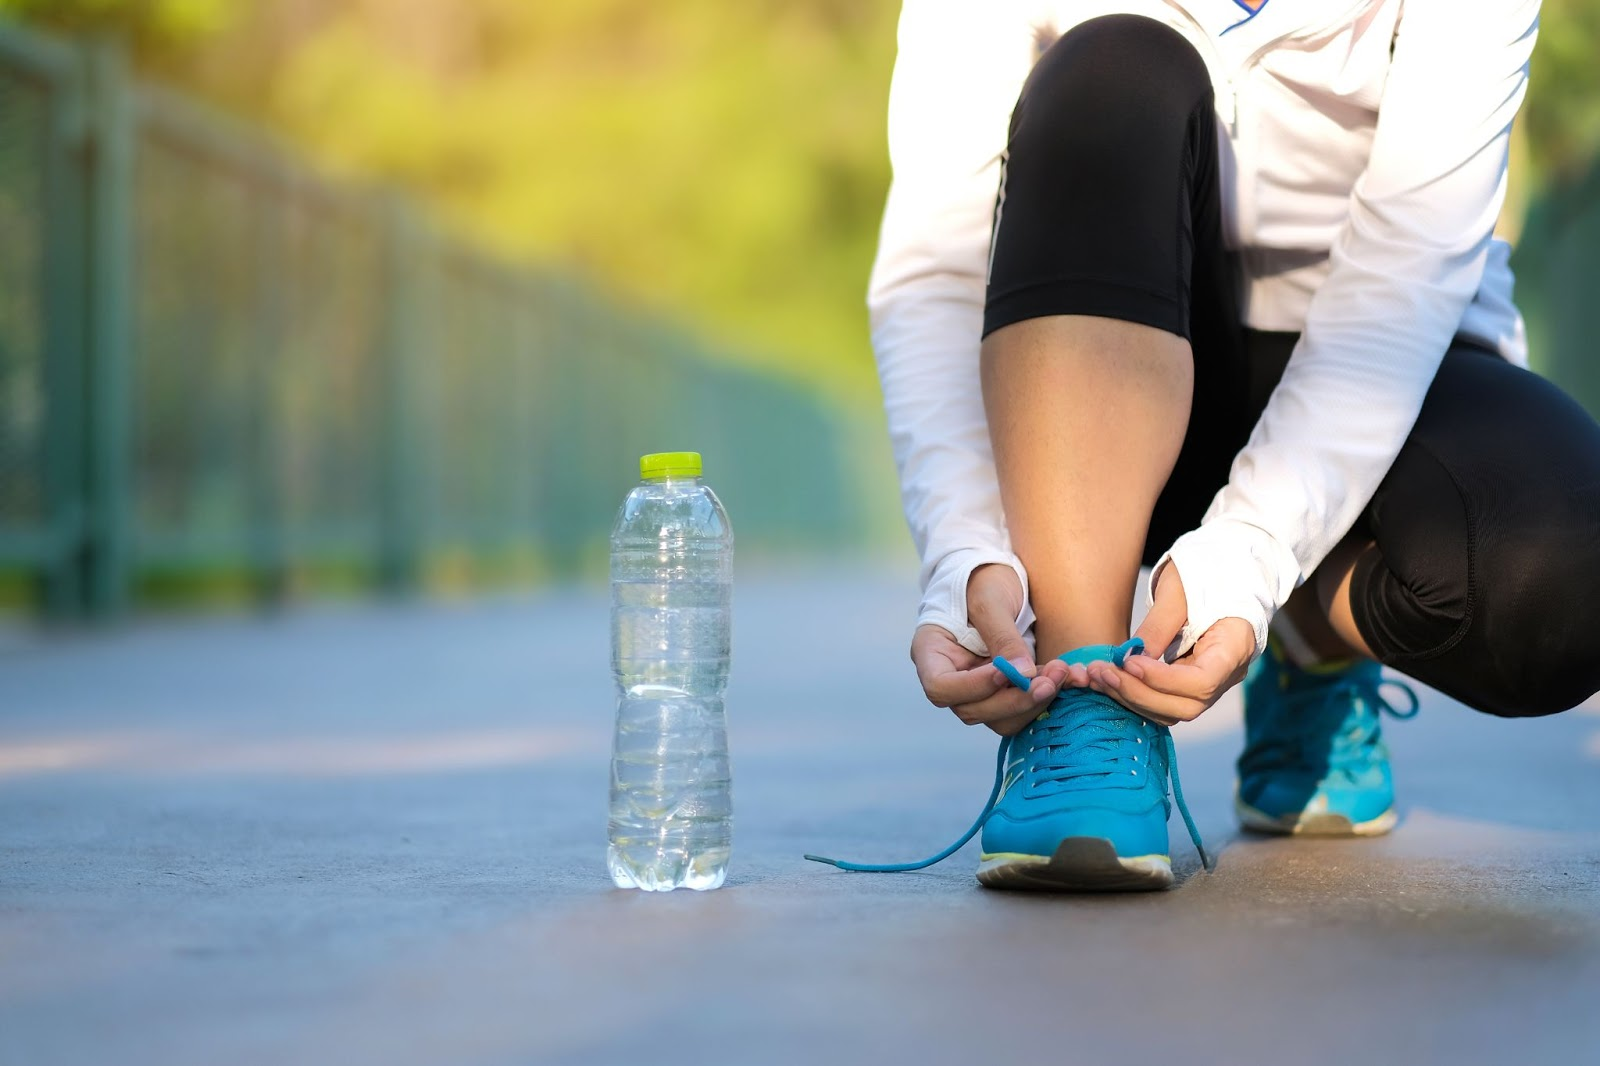 Wake up tired: A close up of a woman tying her shoe before going for a run